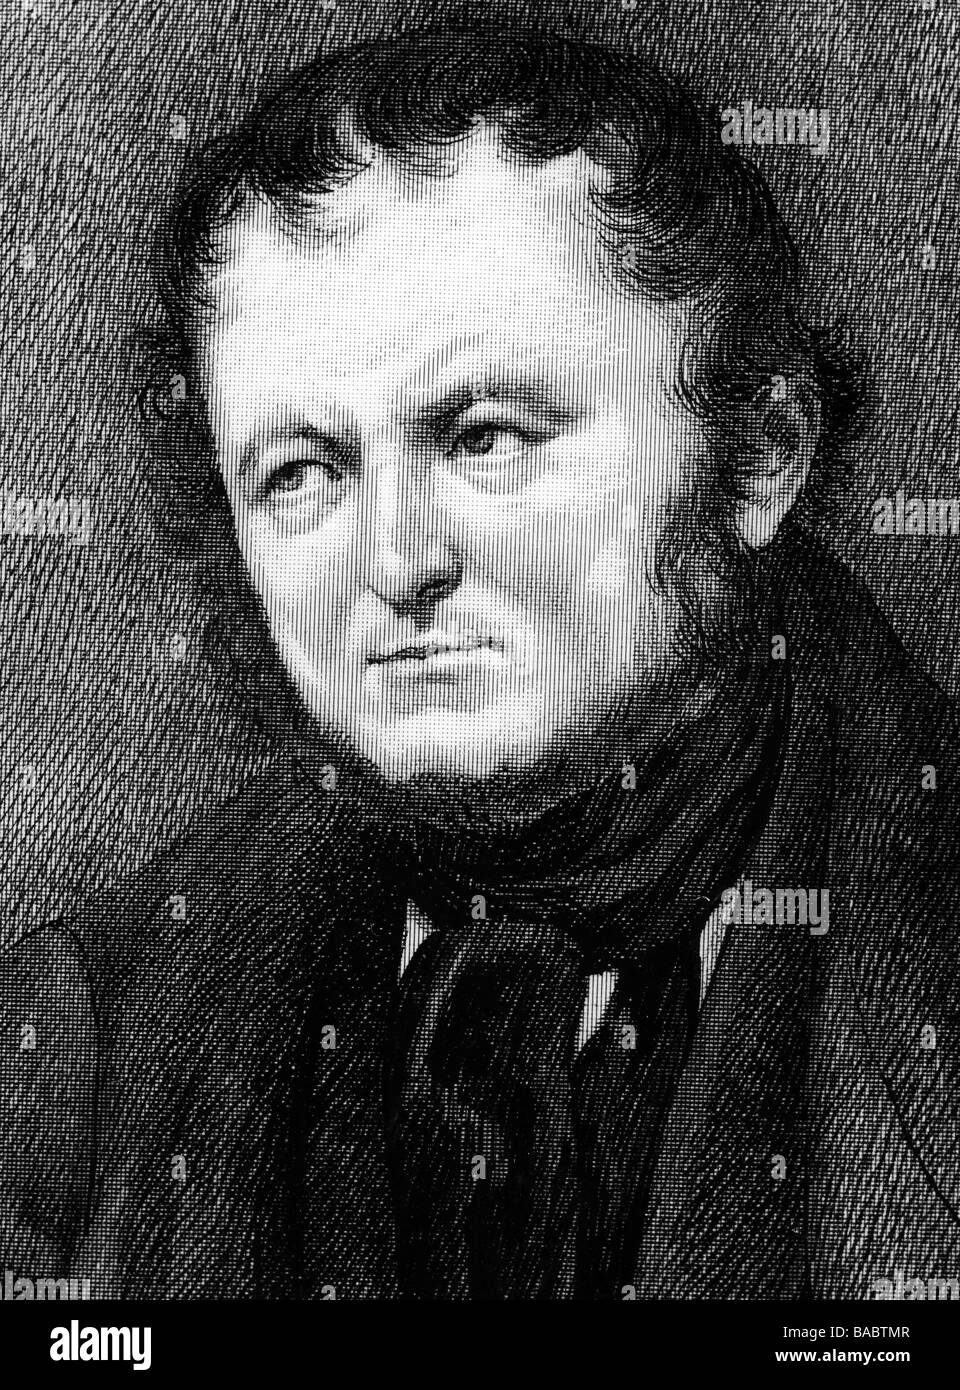 stendhal marie henri beyle french author stendhal marie henri beyle 23 1 1783 23 3 1842 french author writer portrait after original drawing on scaled paper m